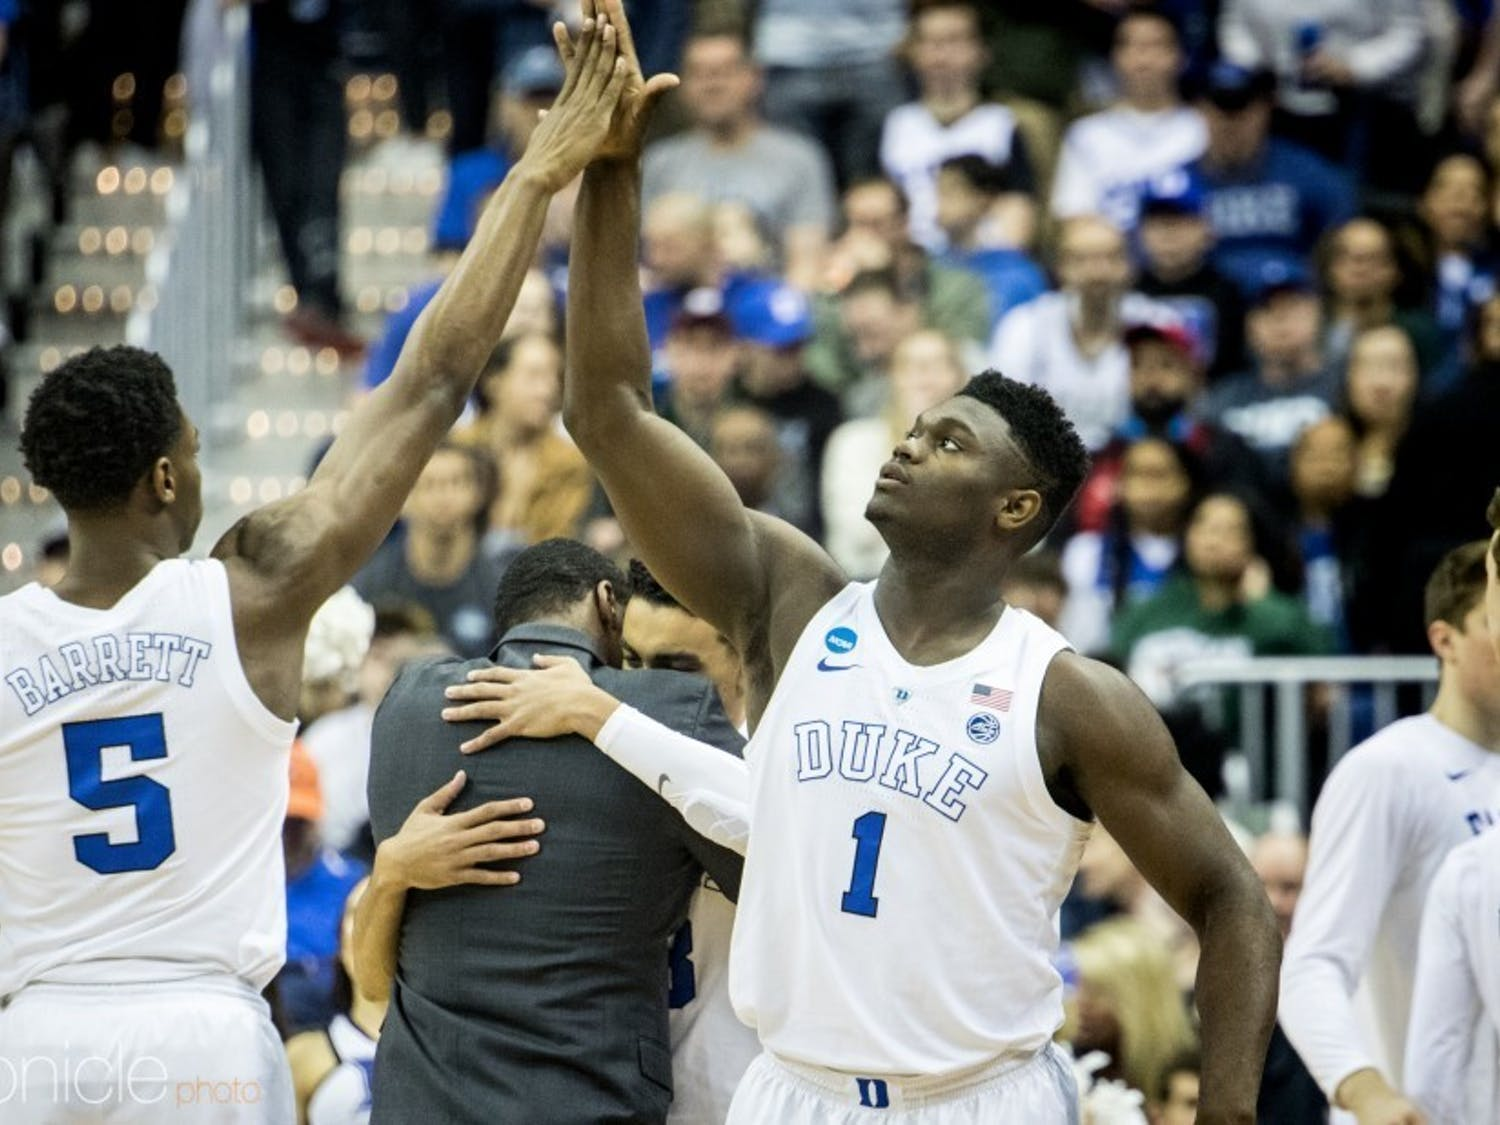 RJ Barrett and Zion Williamson duked it out for the first time since the pair joined the league, with Barrett's Knicks snagging the win.